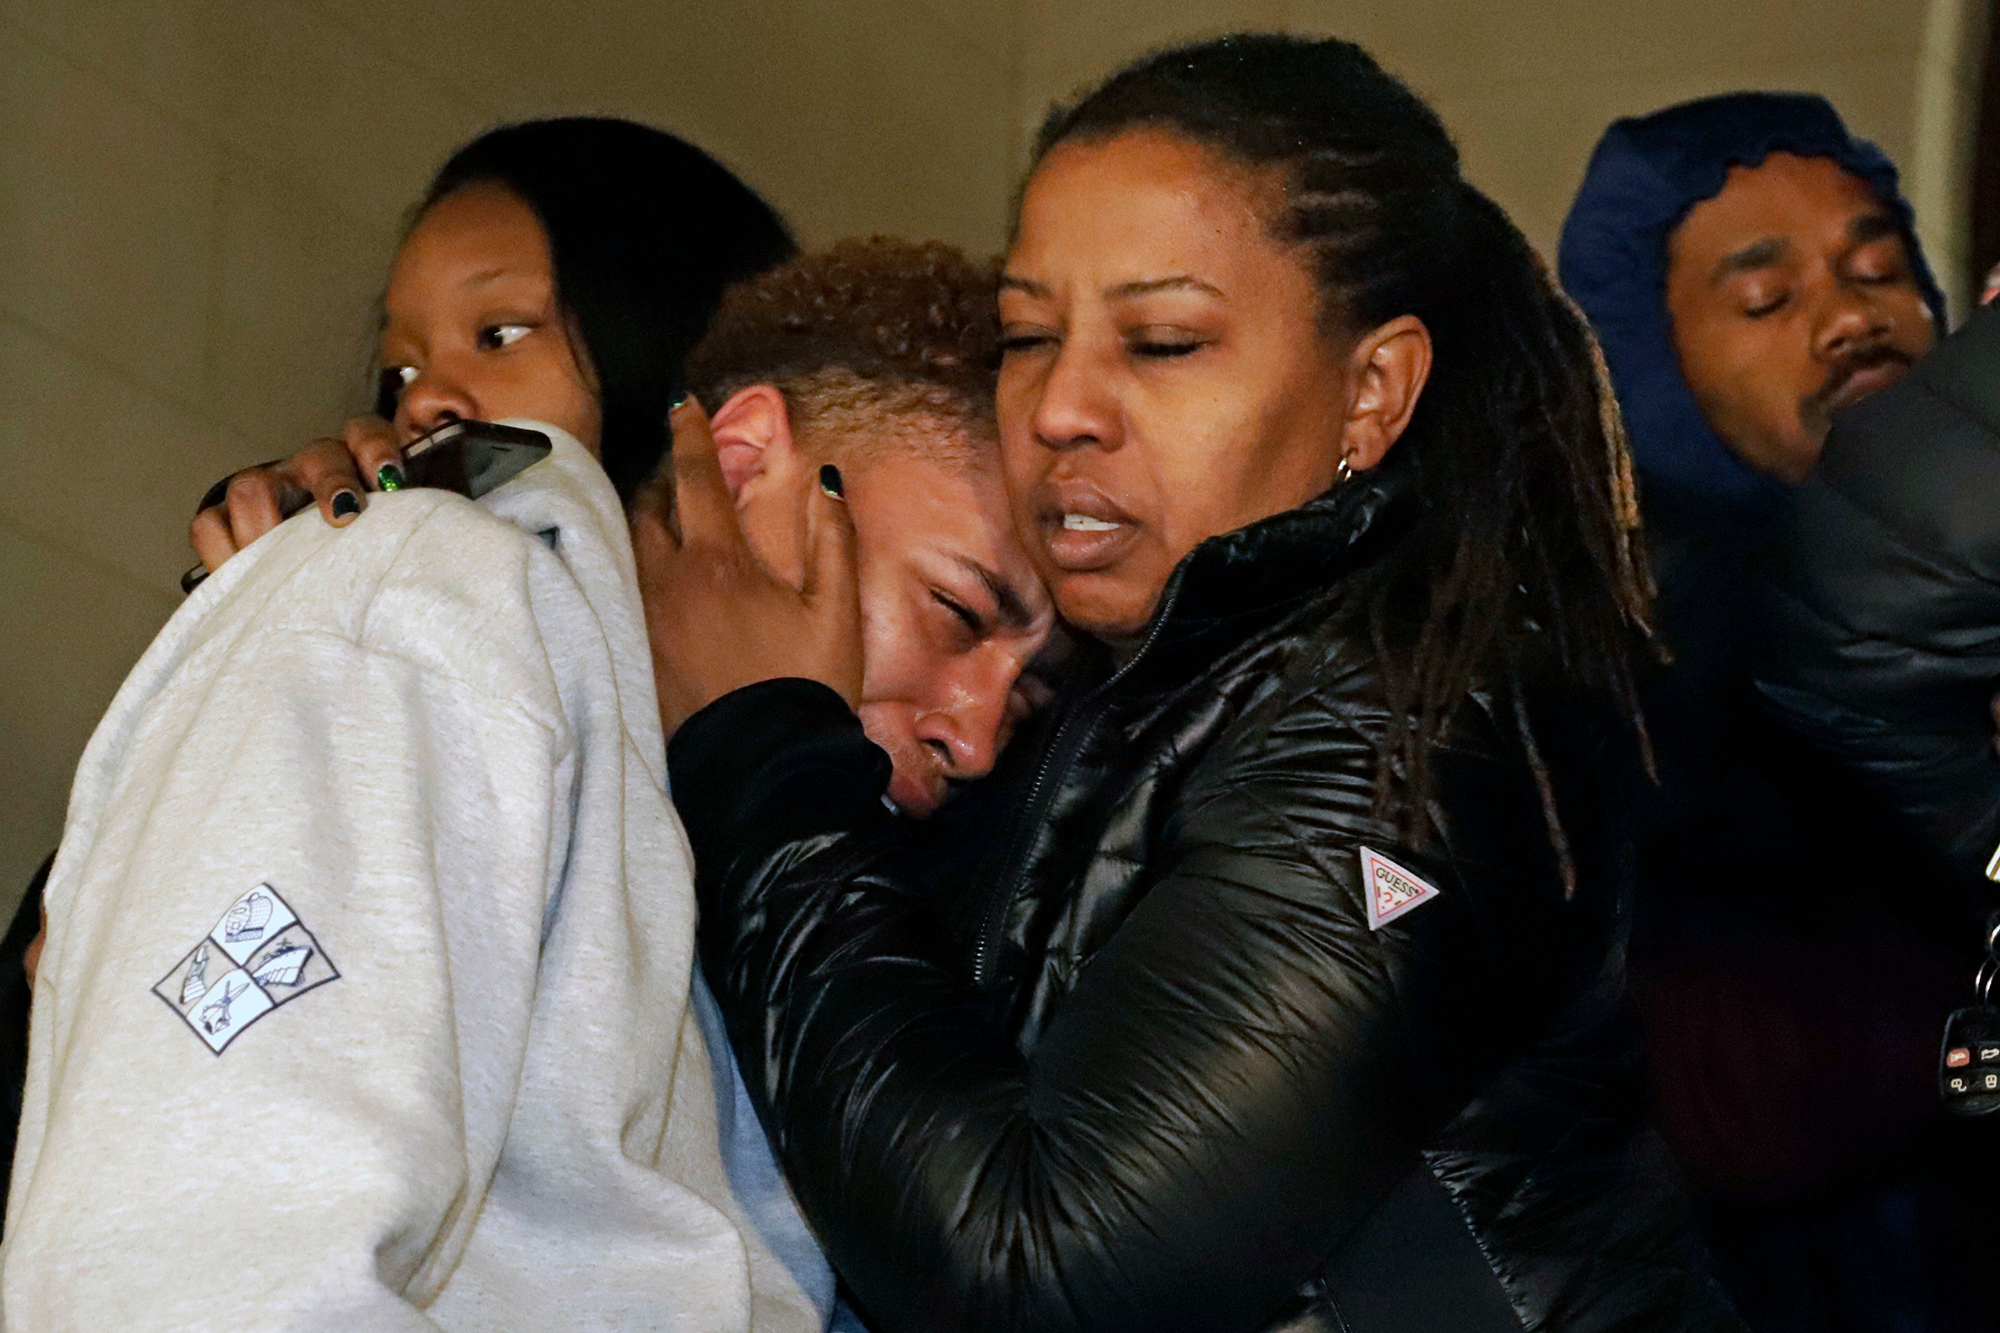 White Former Police Officer Acquitted of Antwon Rose Shooting Death